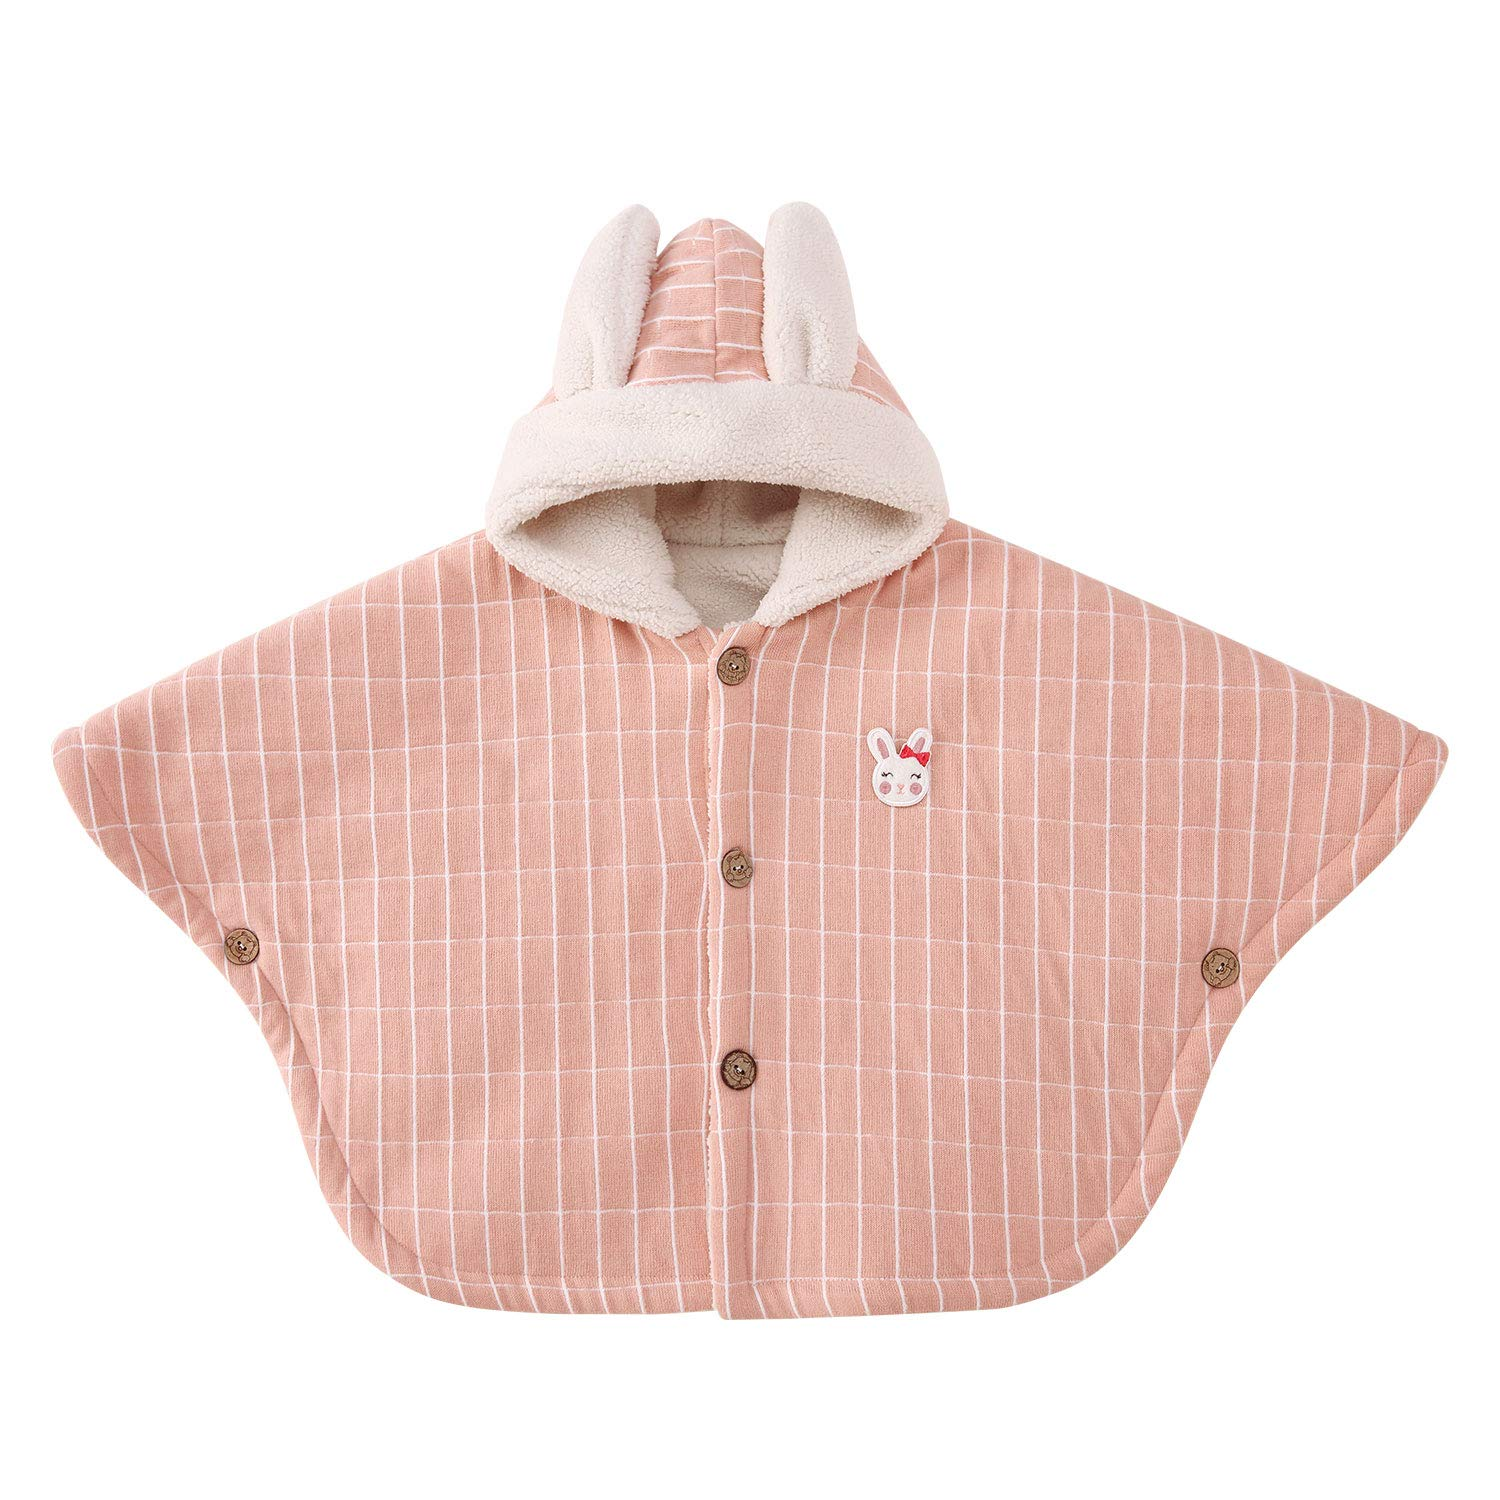 pureborn Baby Girls Hooded Carseat Poncho Cape Cloak Fleece Coat Snowsuit Winter Outfit Pink 1-3 Years by pureborn